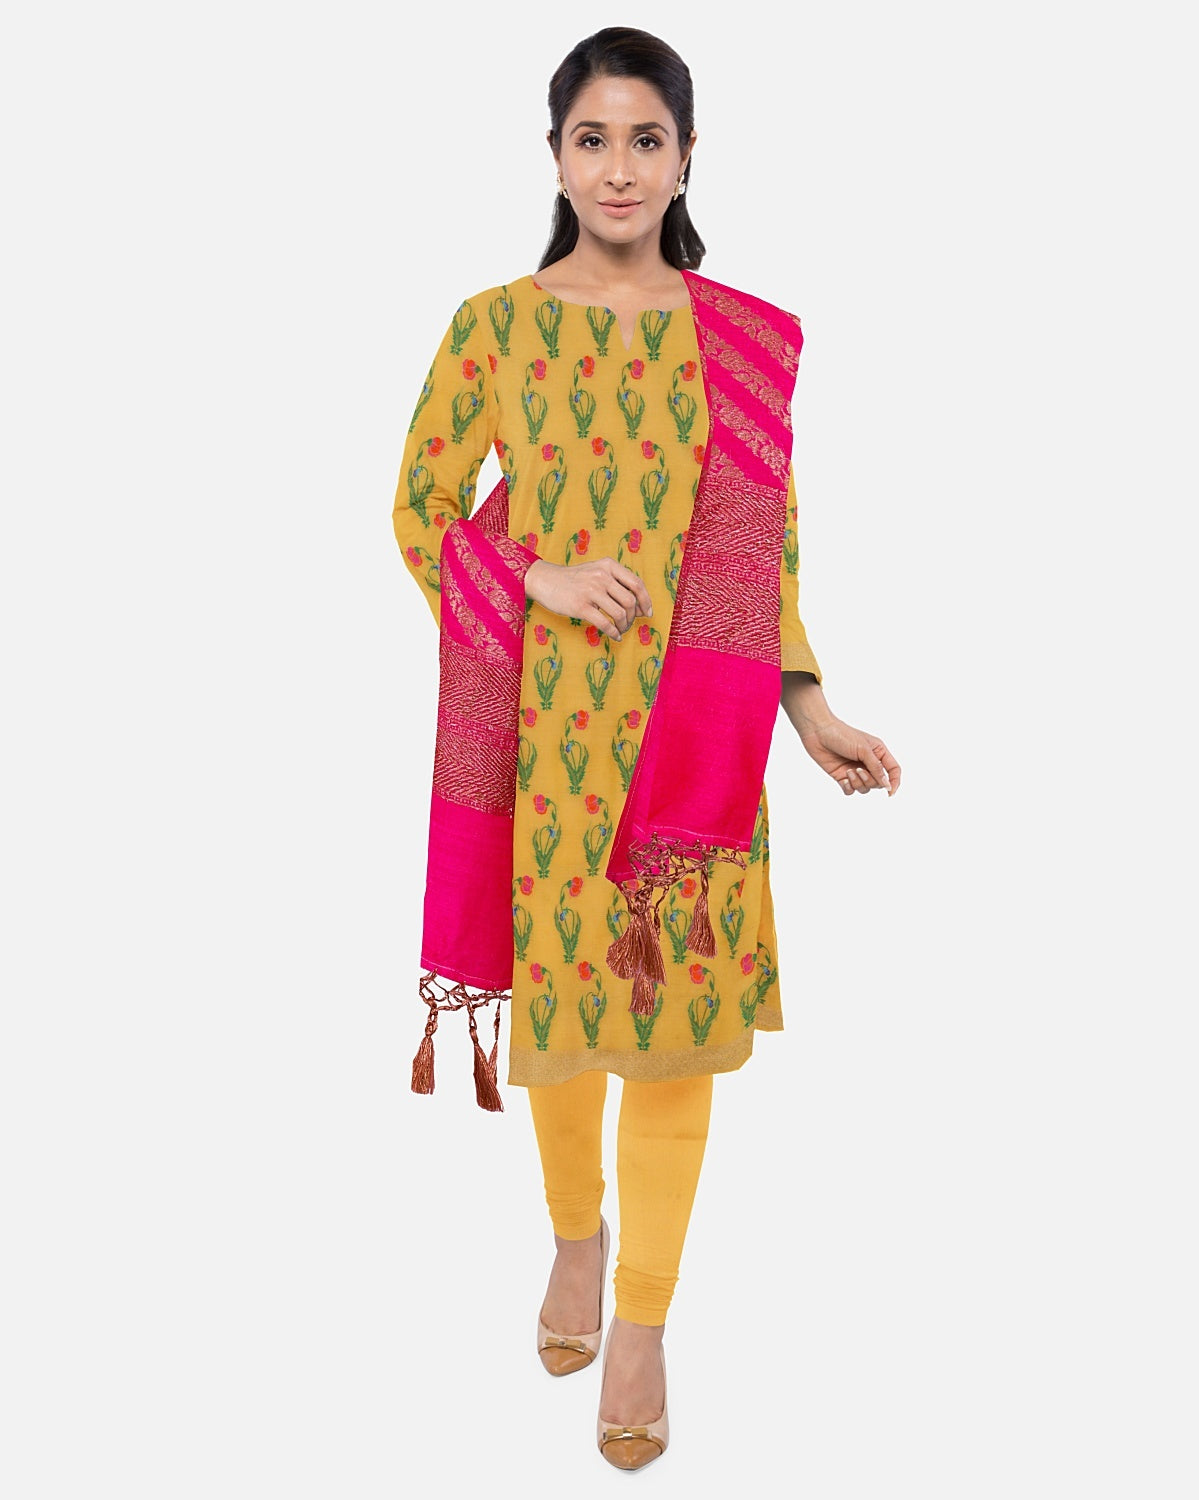 Golden Yellow Moonga Brocade Suit Fabric Set